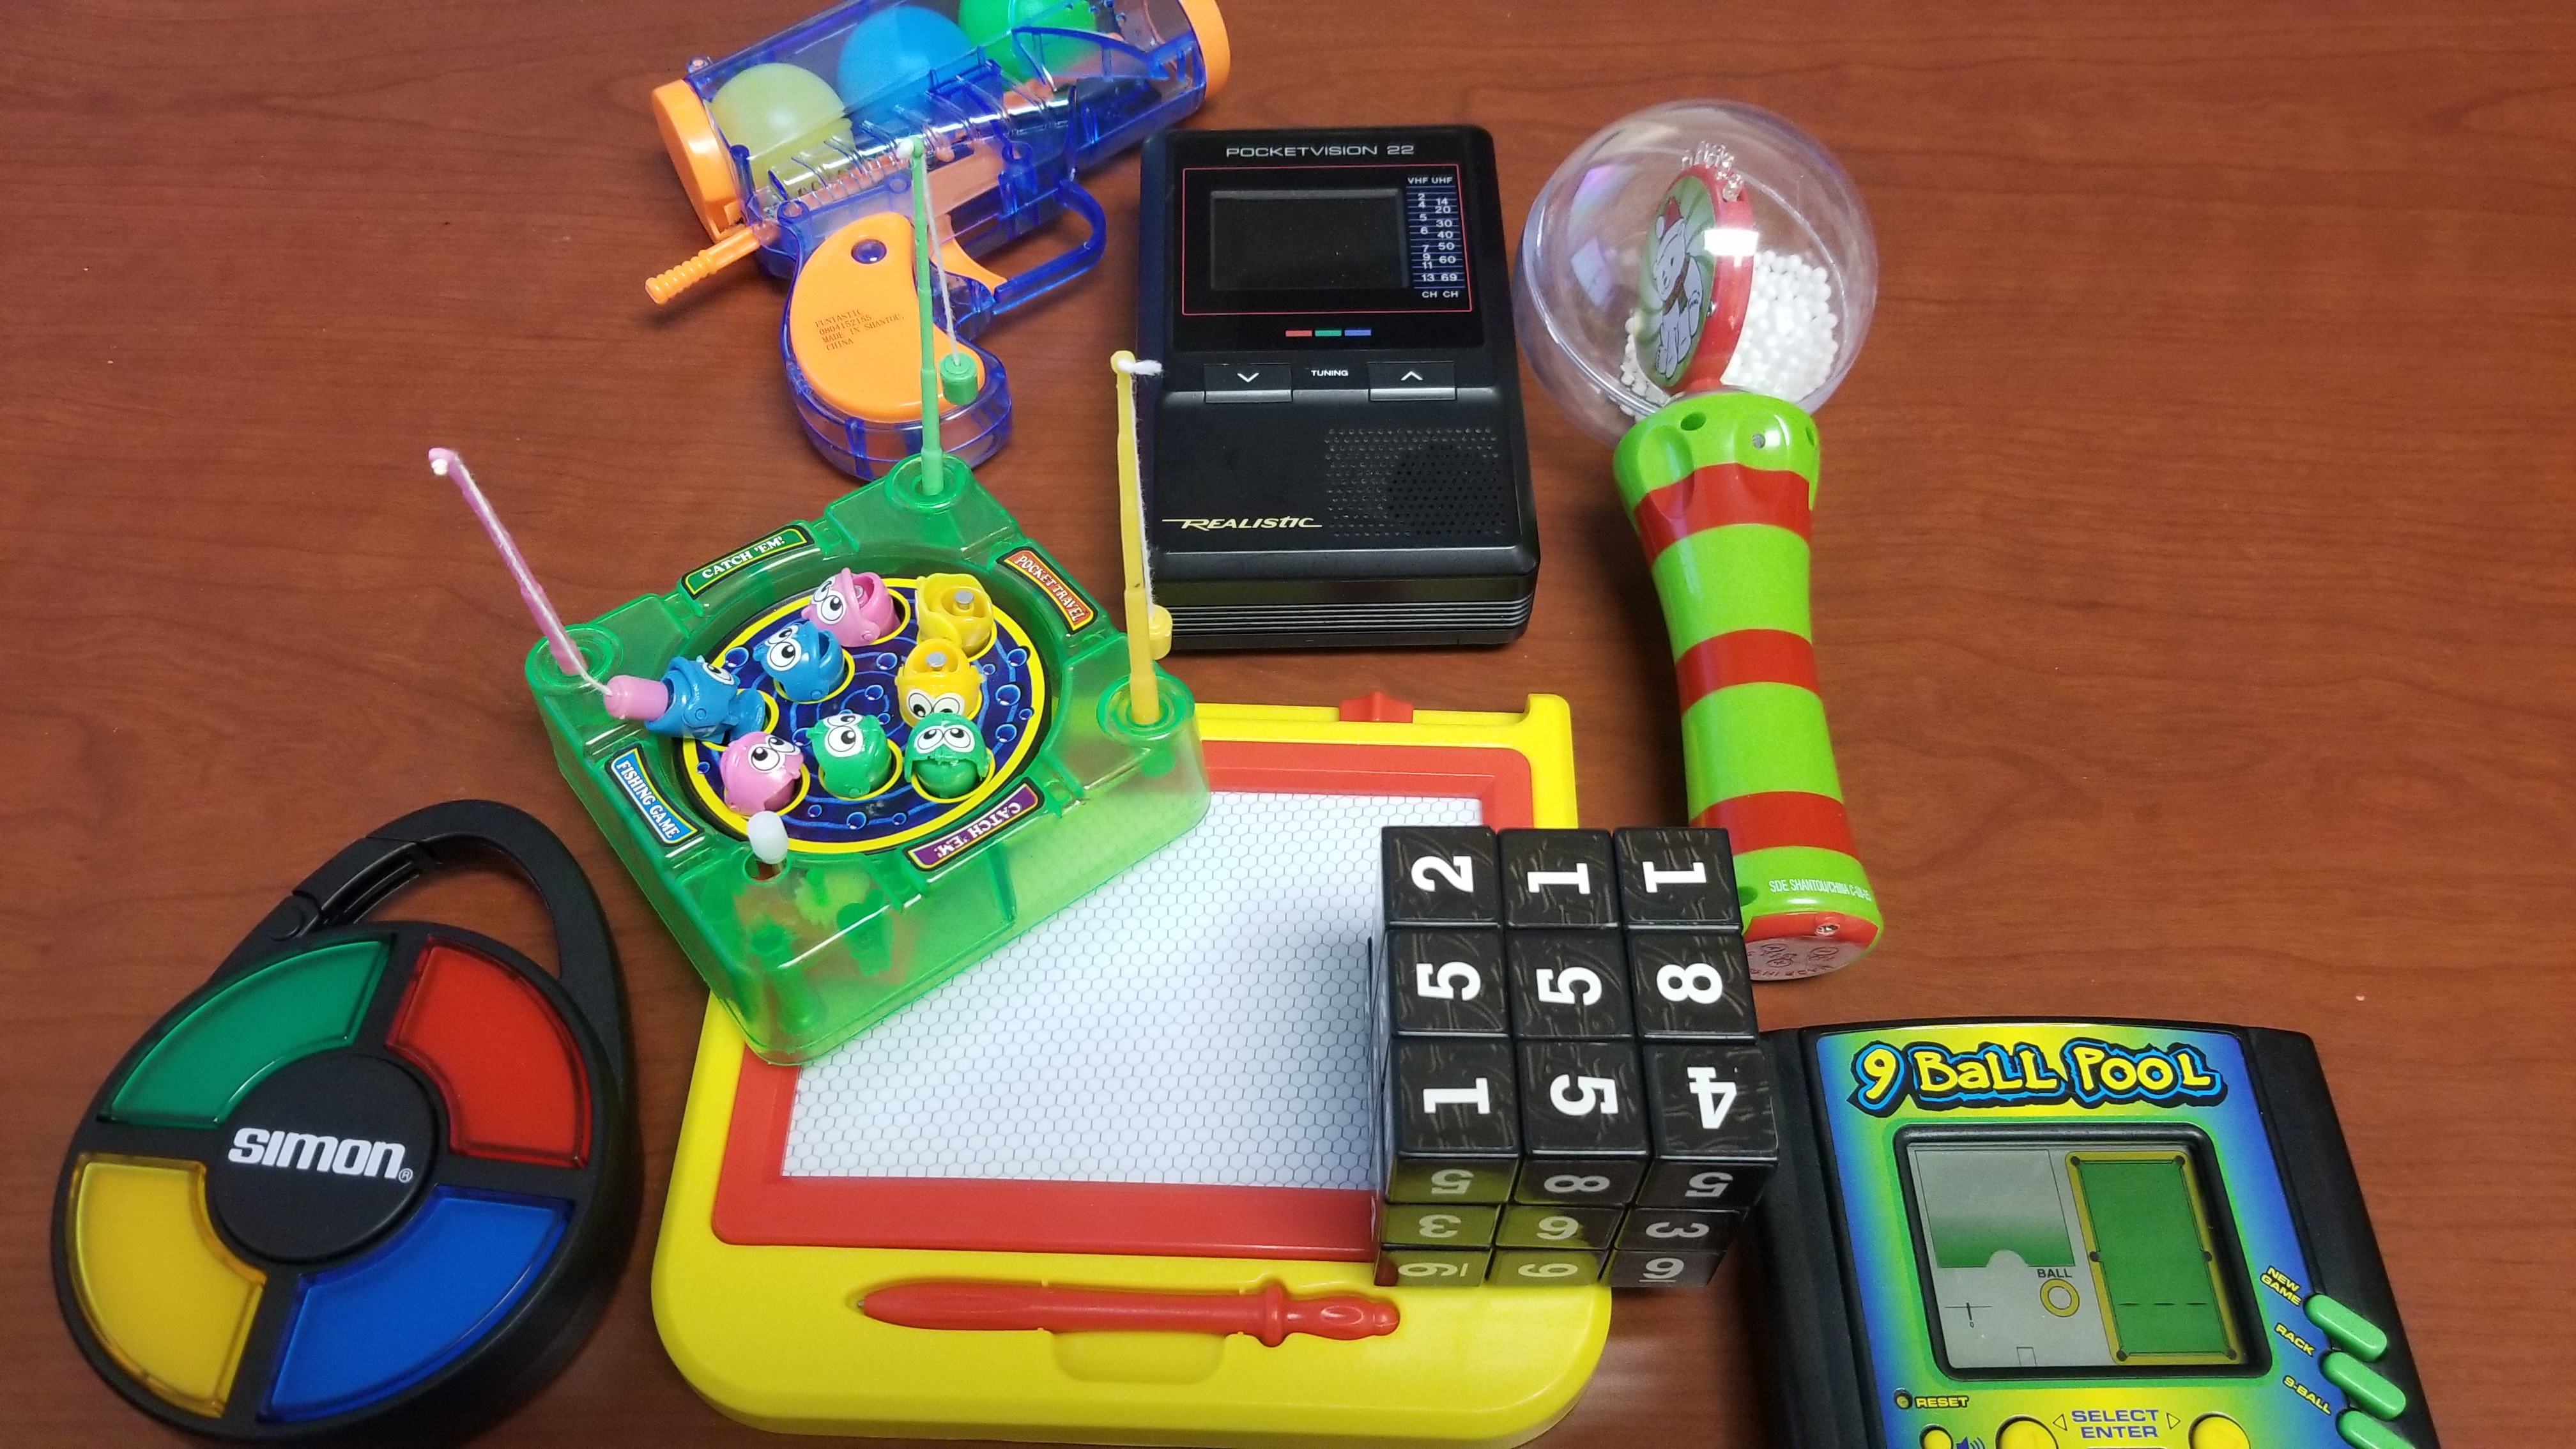 A few fun items for the in-class usability analysis